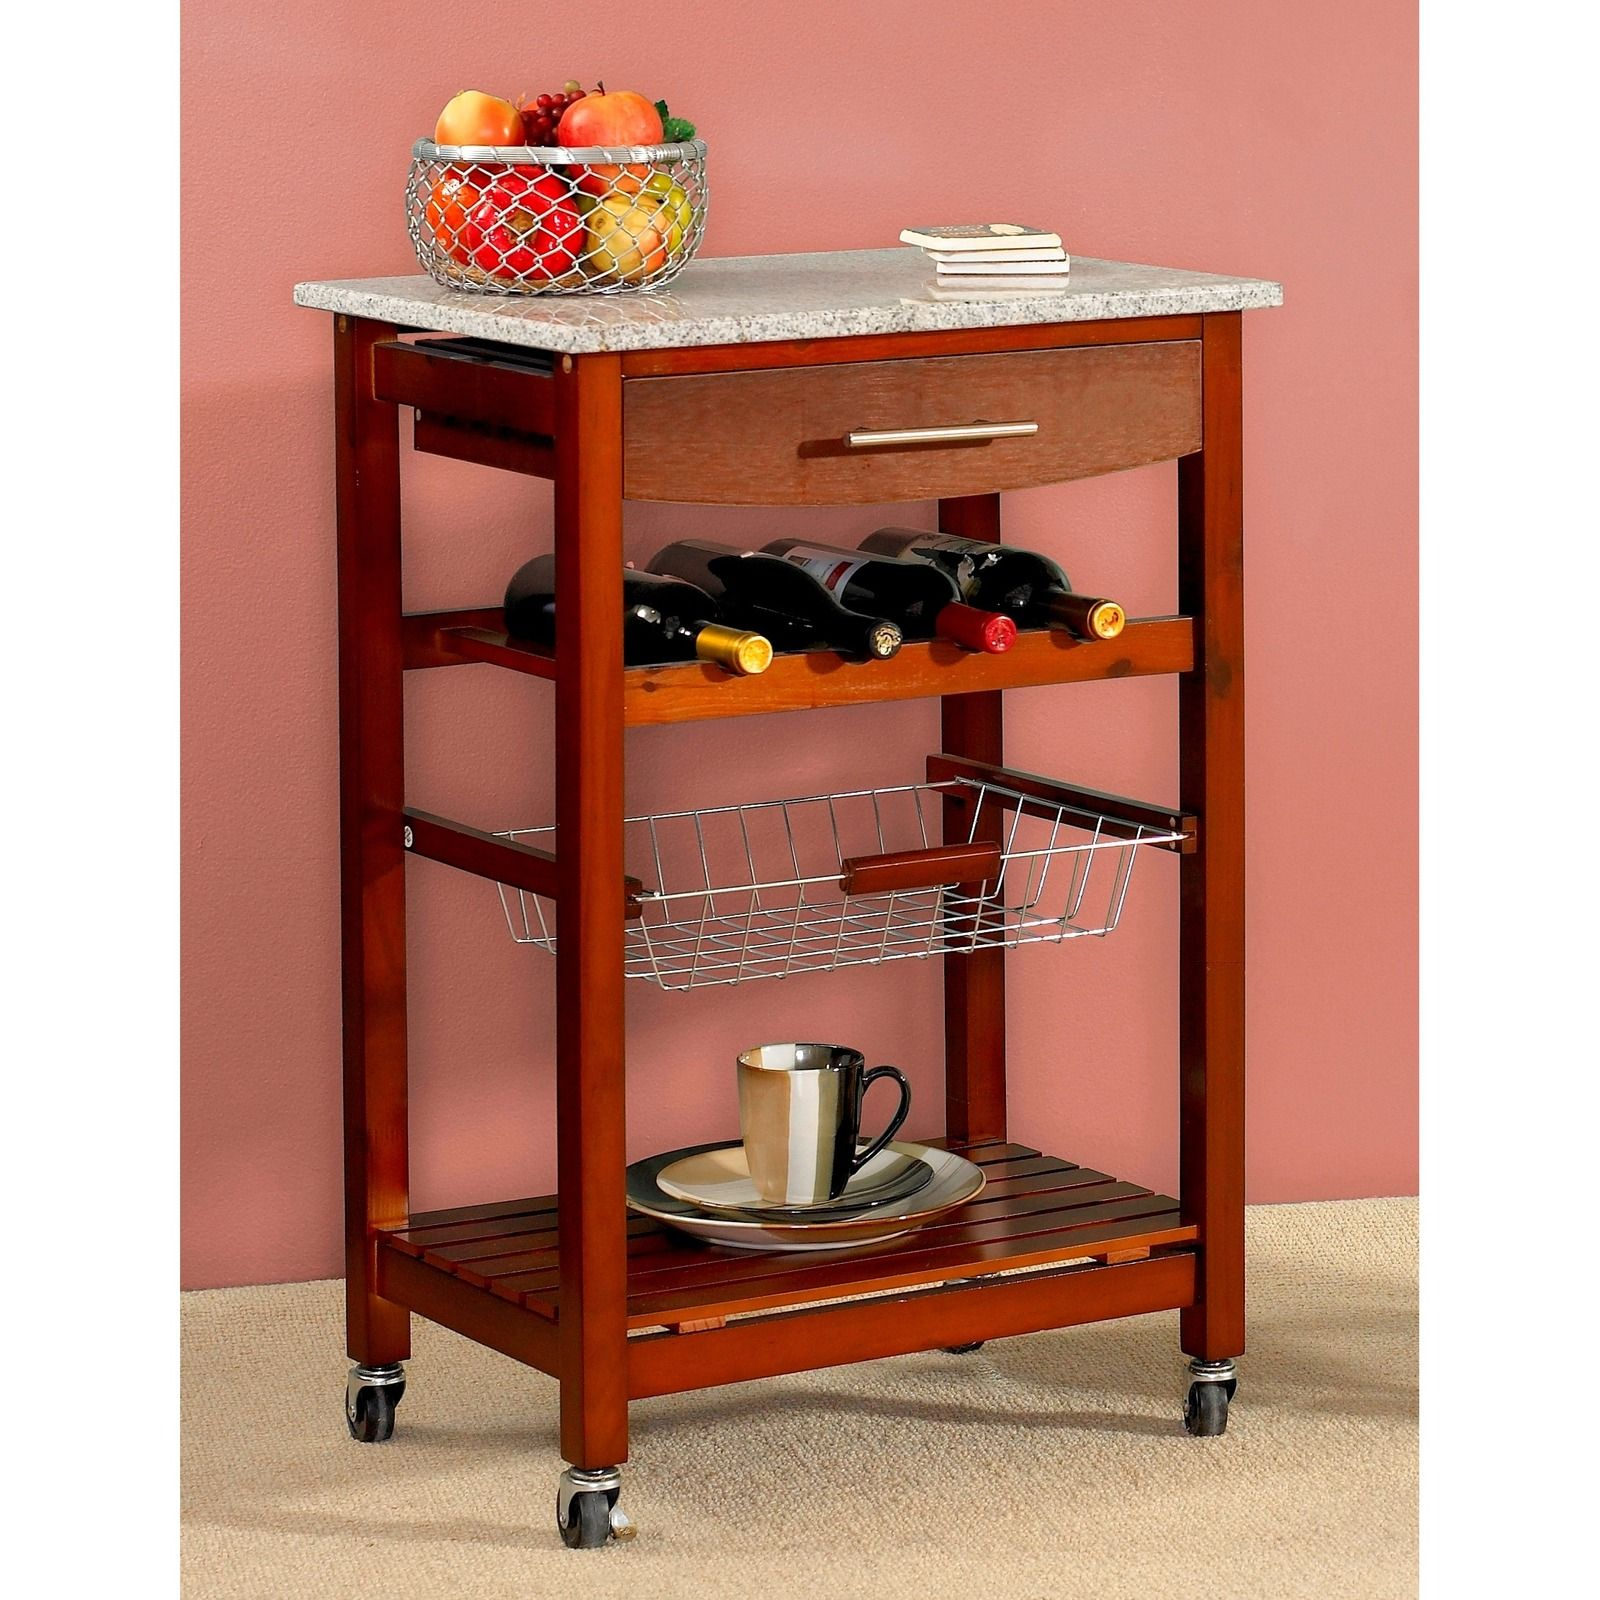 Product Information Small Kitchen Island Rolling Cart ...